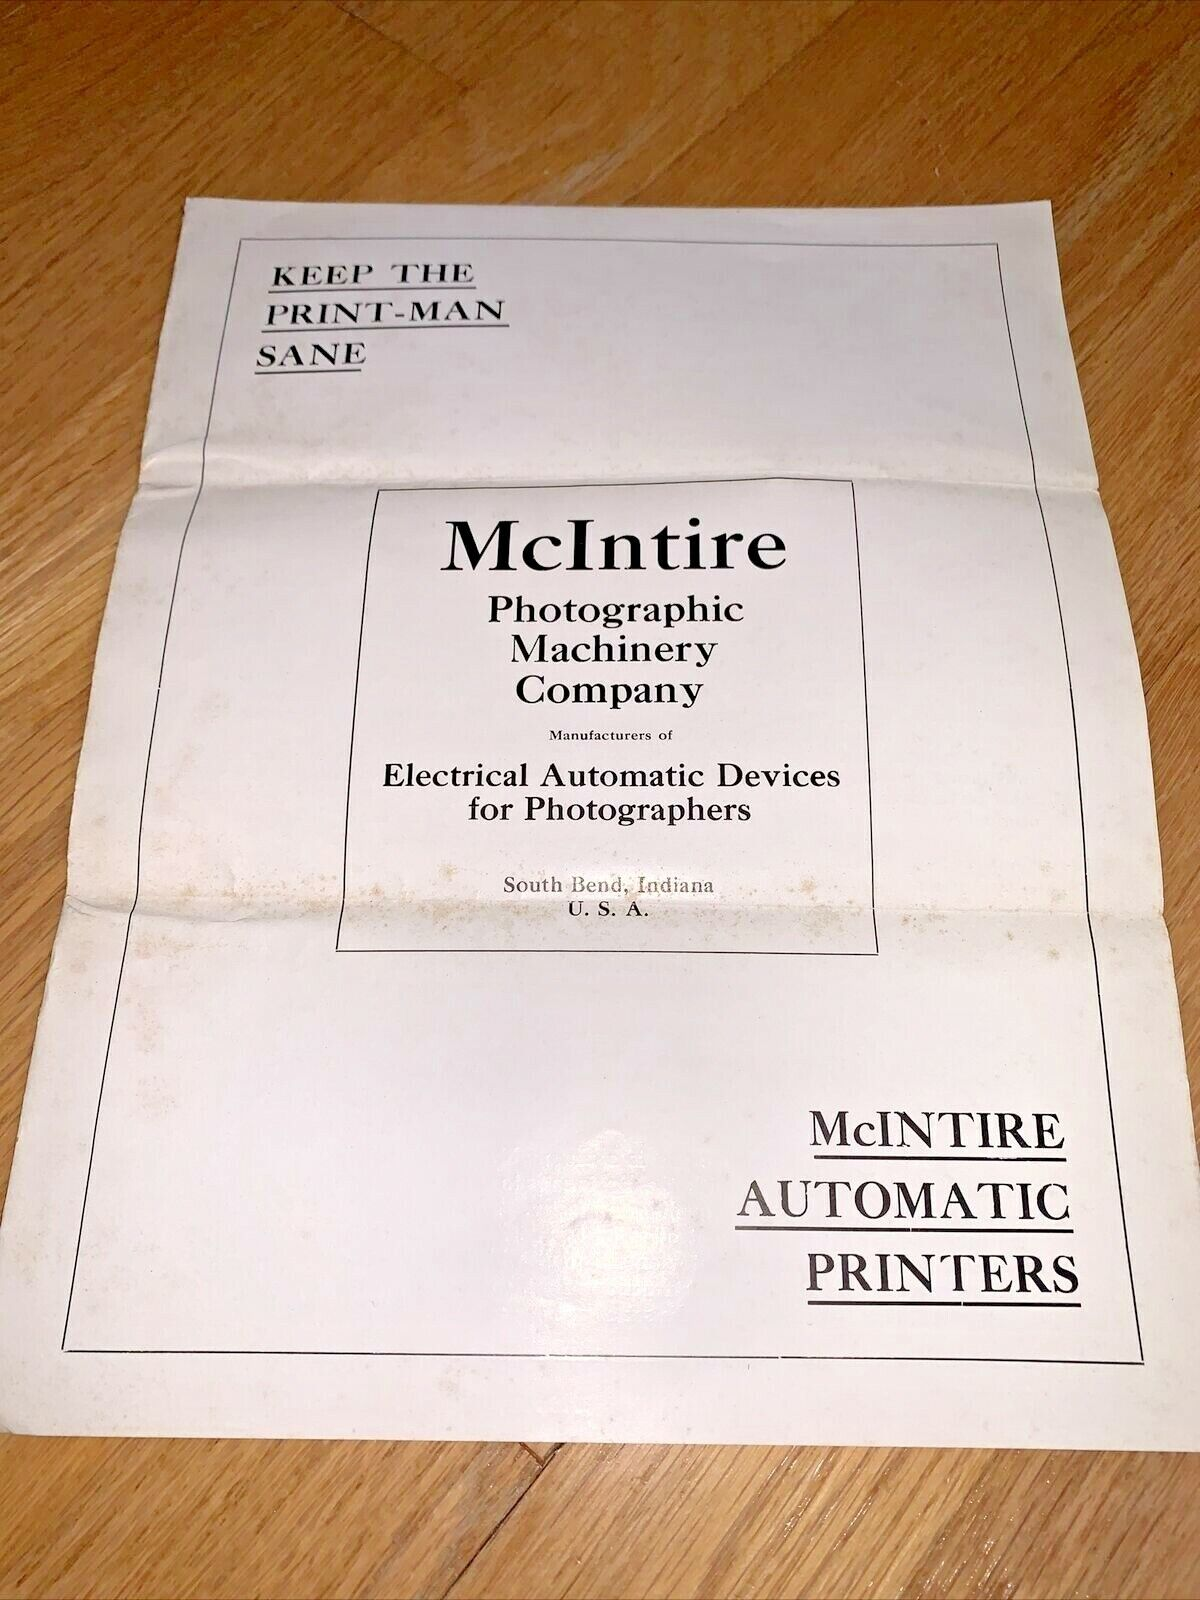 1931 MCINTIRE PHOTO MACHINERY CO. Brochure - Automatic Printers - South Bend IN - $14.95